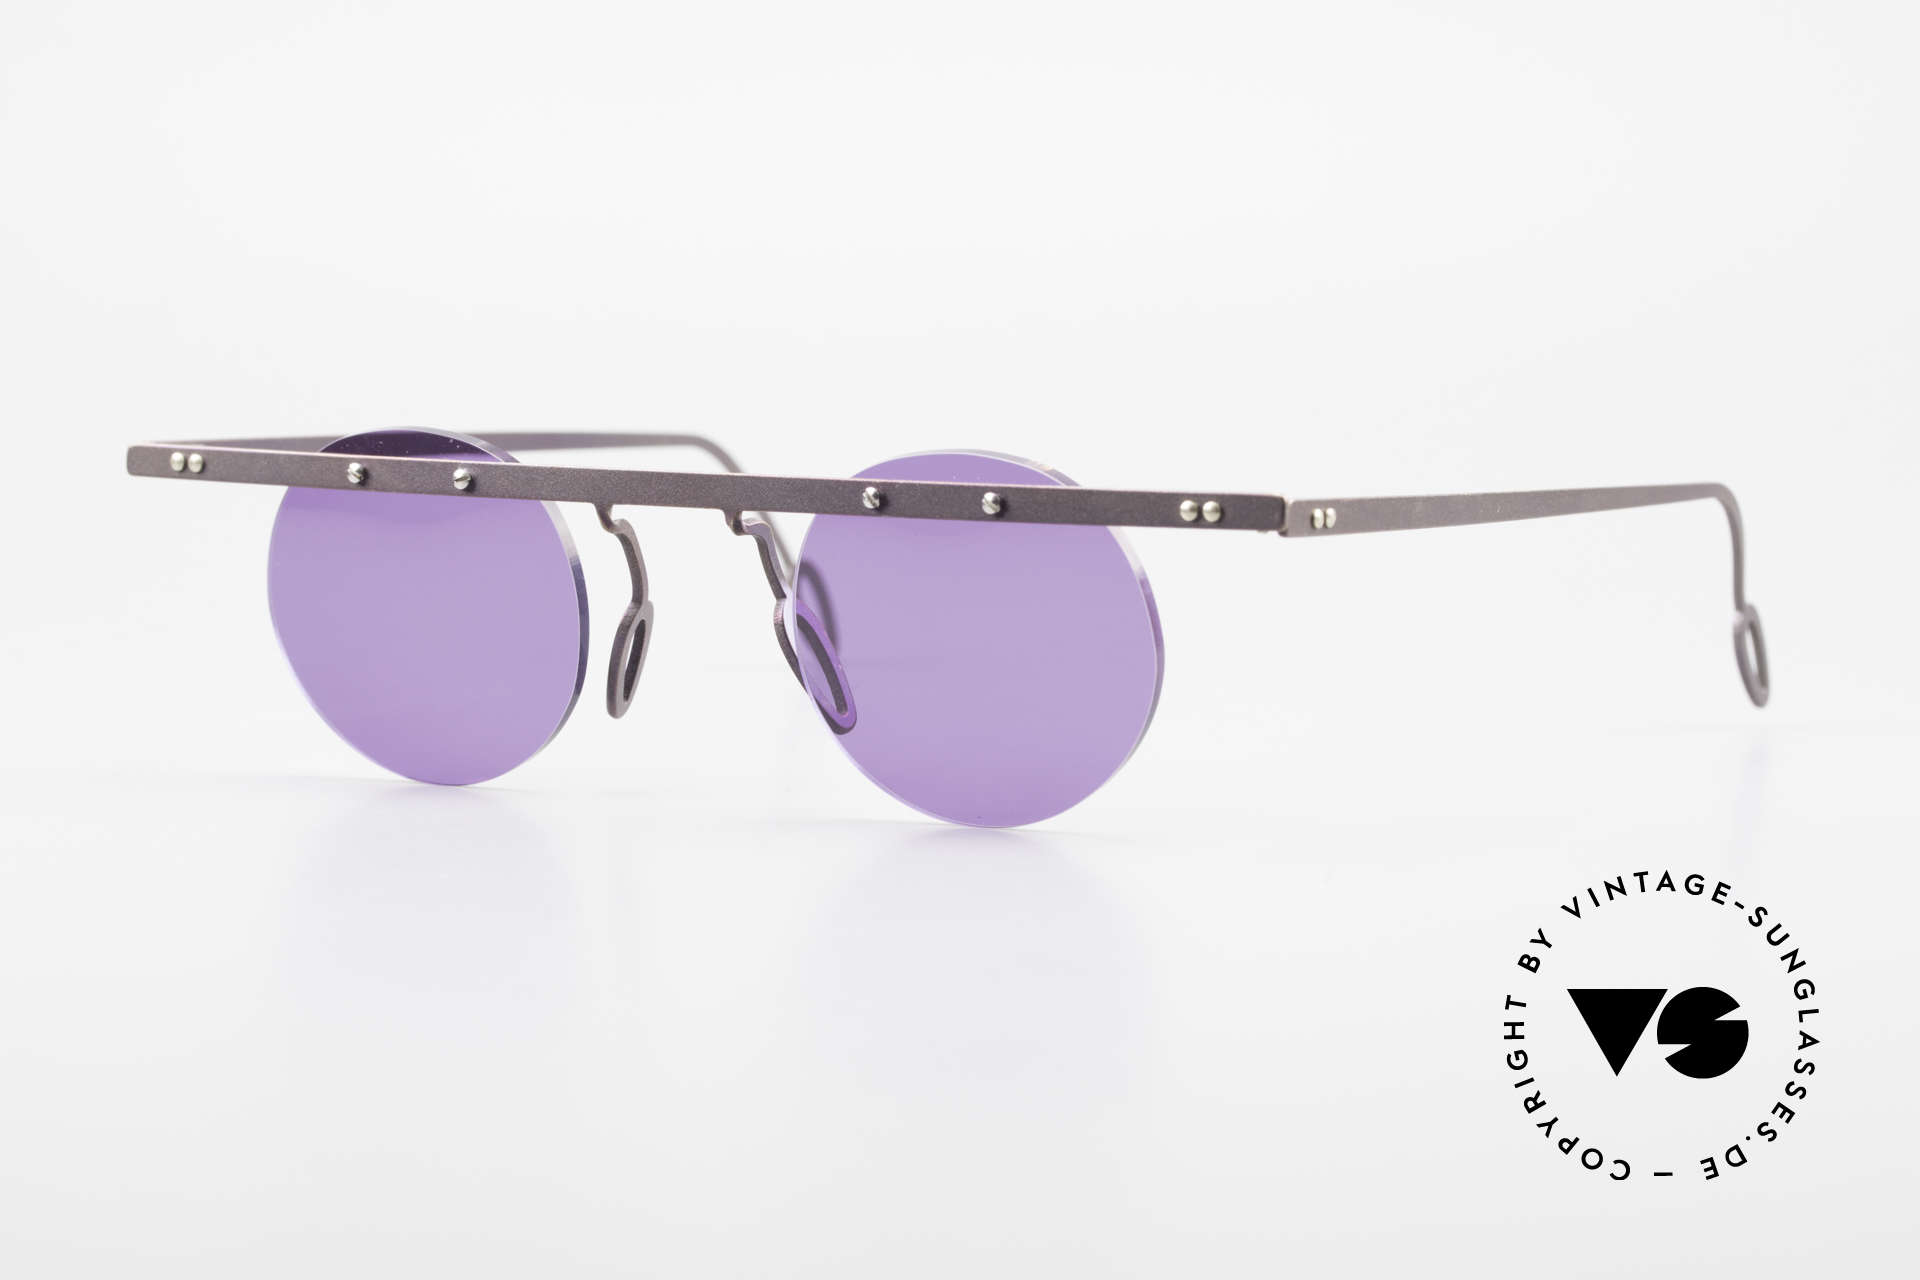 Theo Belgium Tita VII 5 Vintage Titanium Sunglasses, Theo Belgium: the most self-willed brand in the world, Made for Men and Women